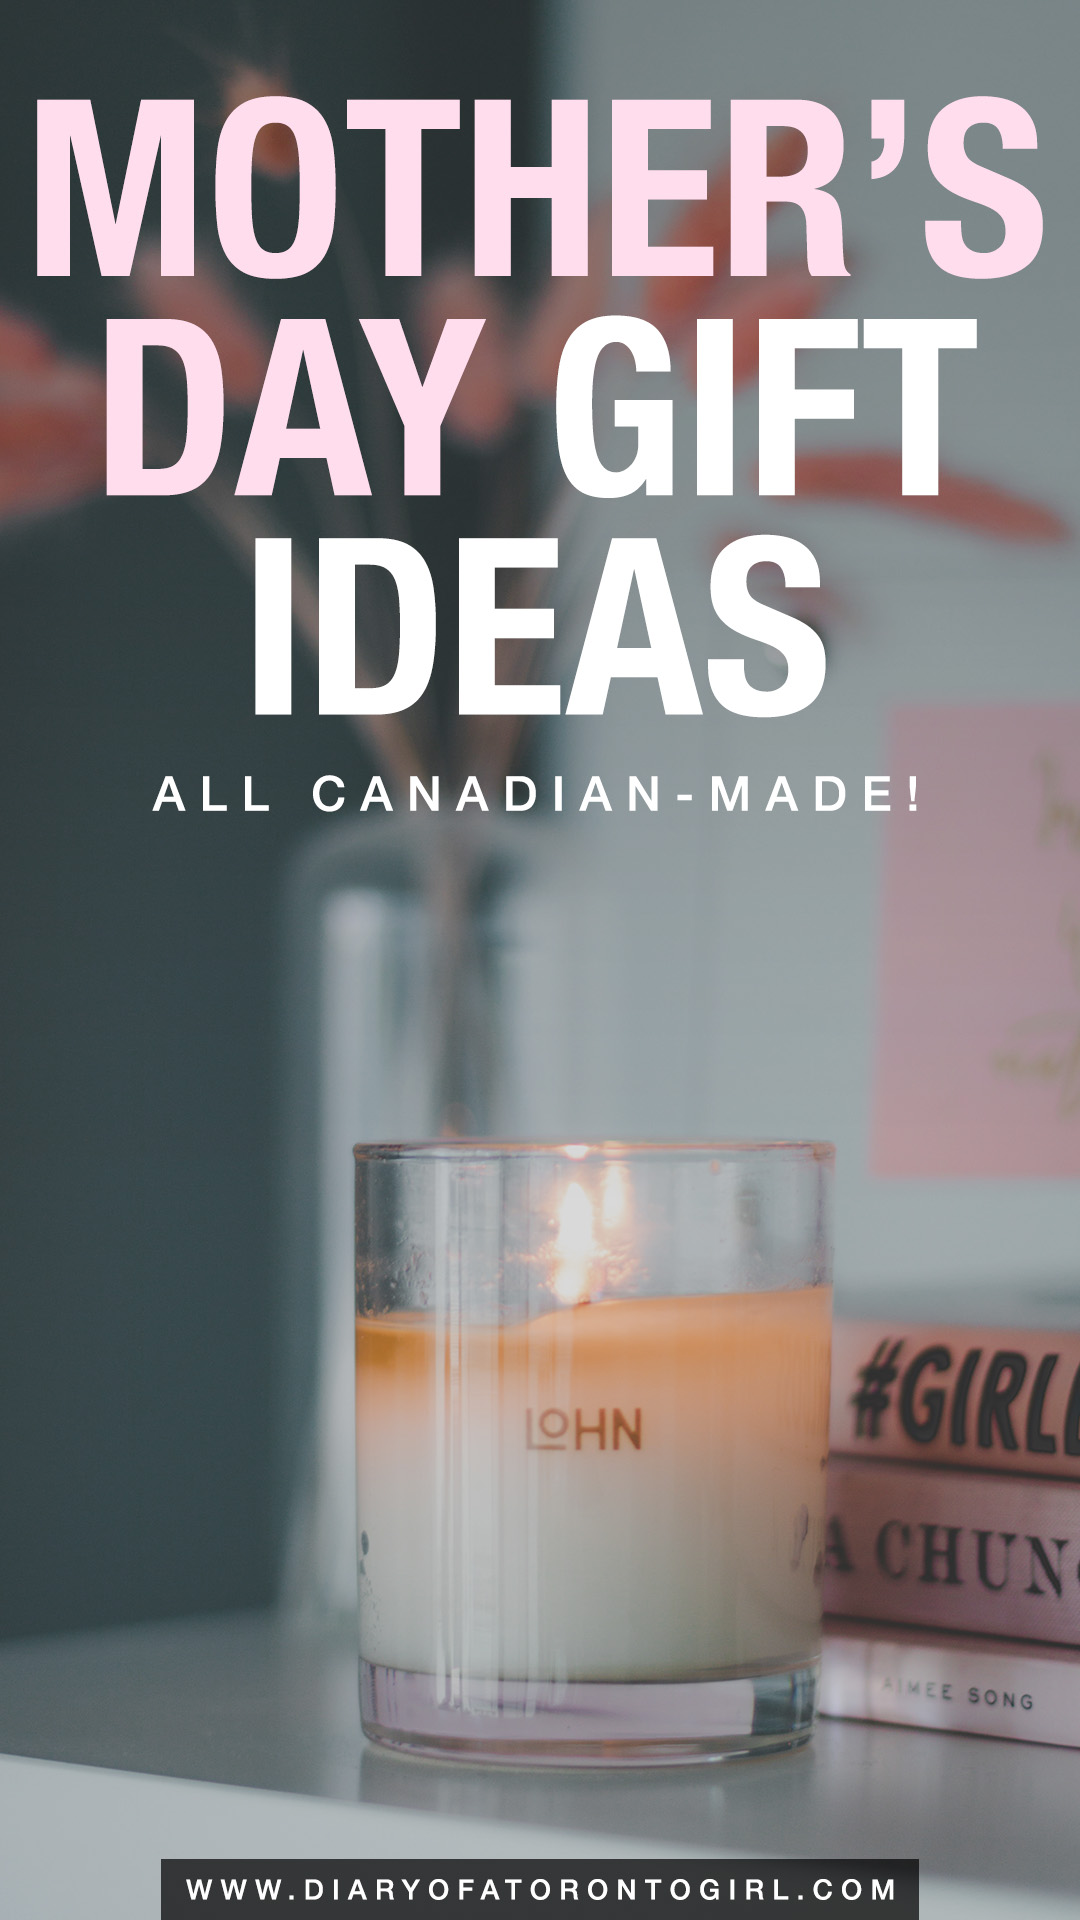 Mother's Day gift ideas in Canada